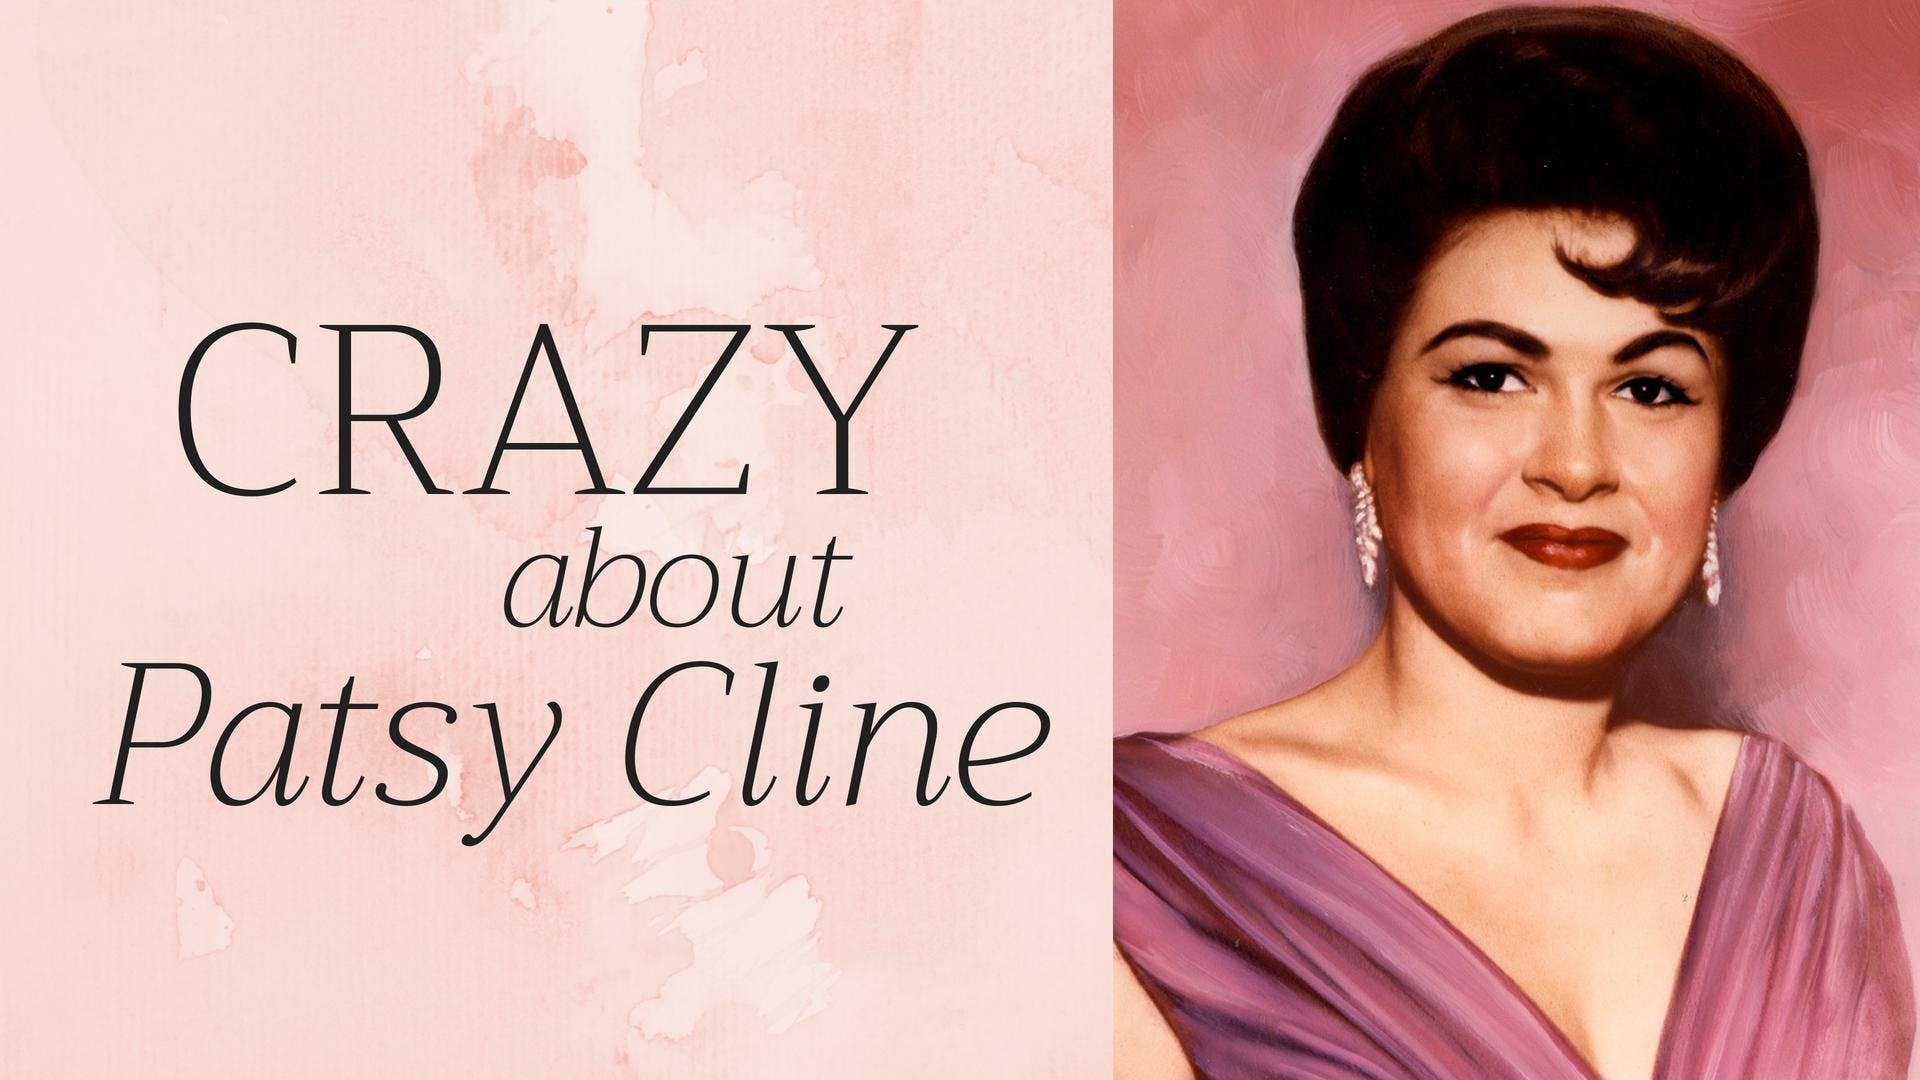 CRAZY about Patsy Cline